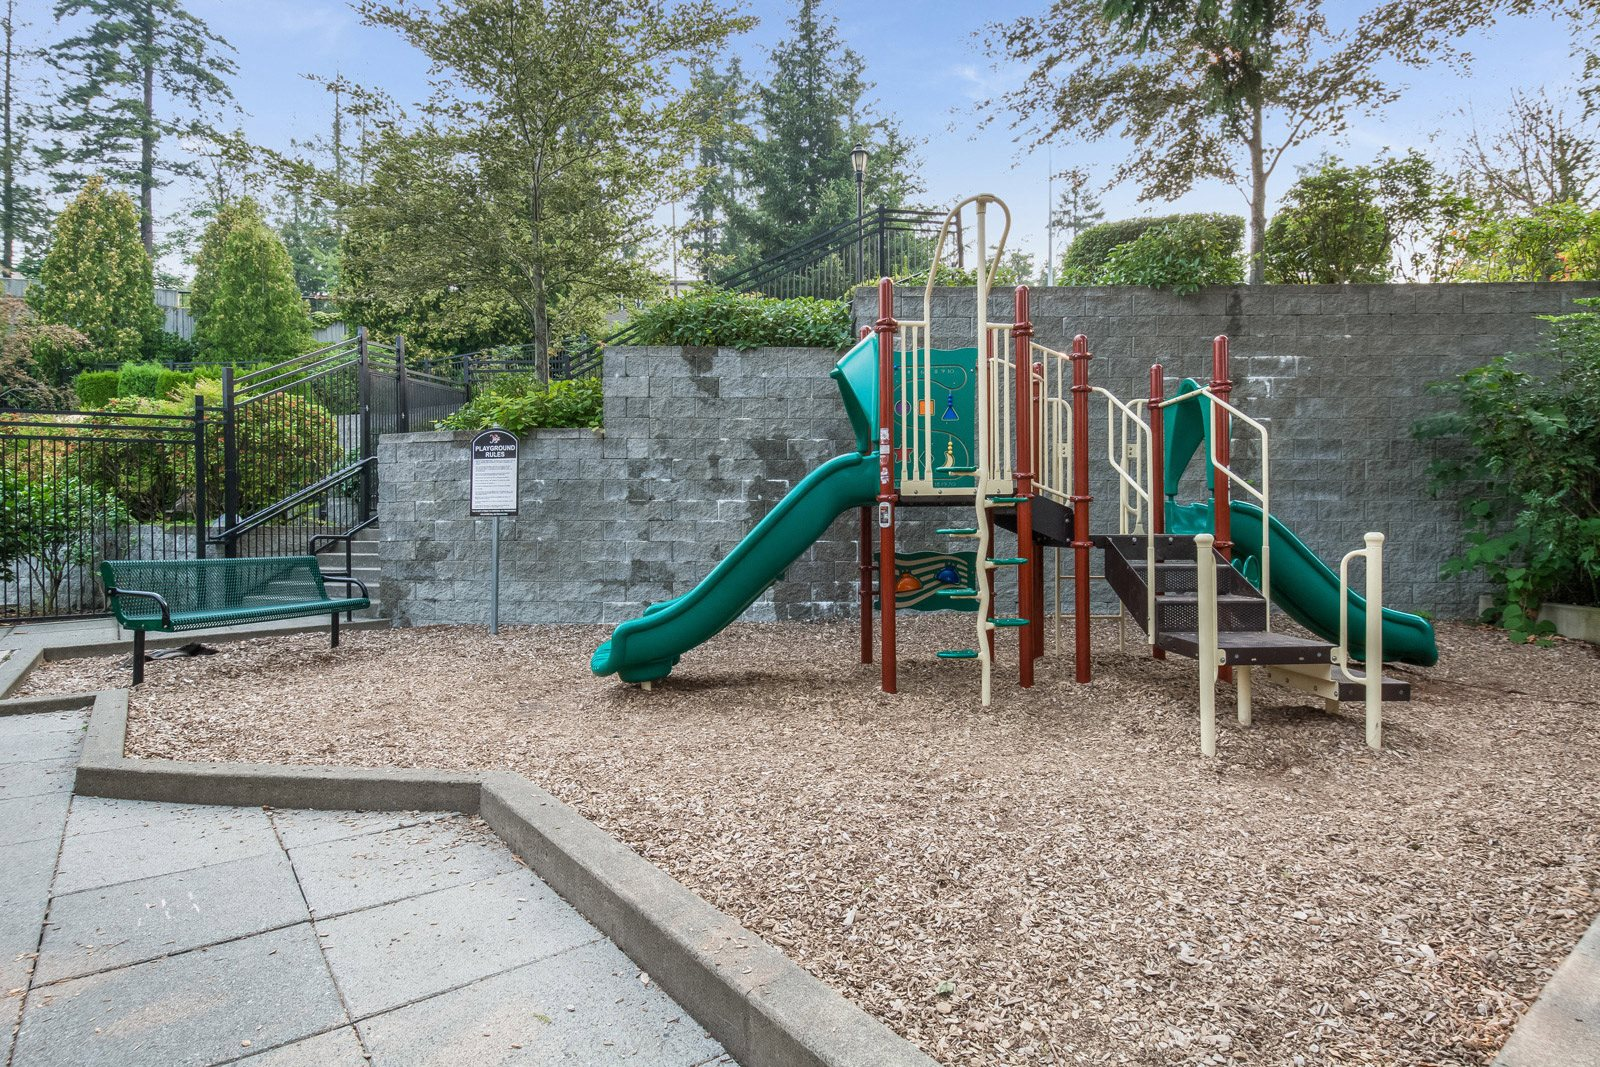 Fun Stop Tot Lot at Reflections by Windsor,  Redmond, 98052